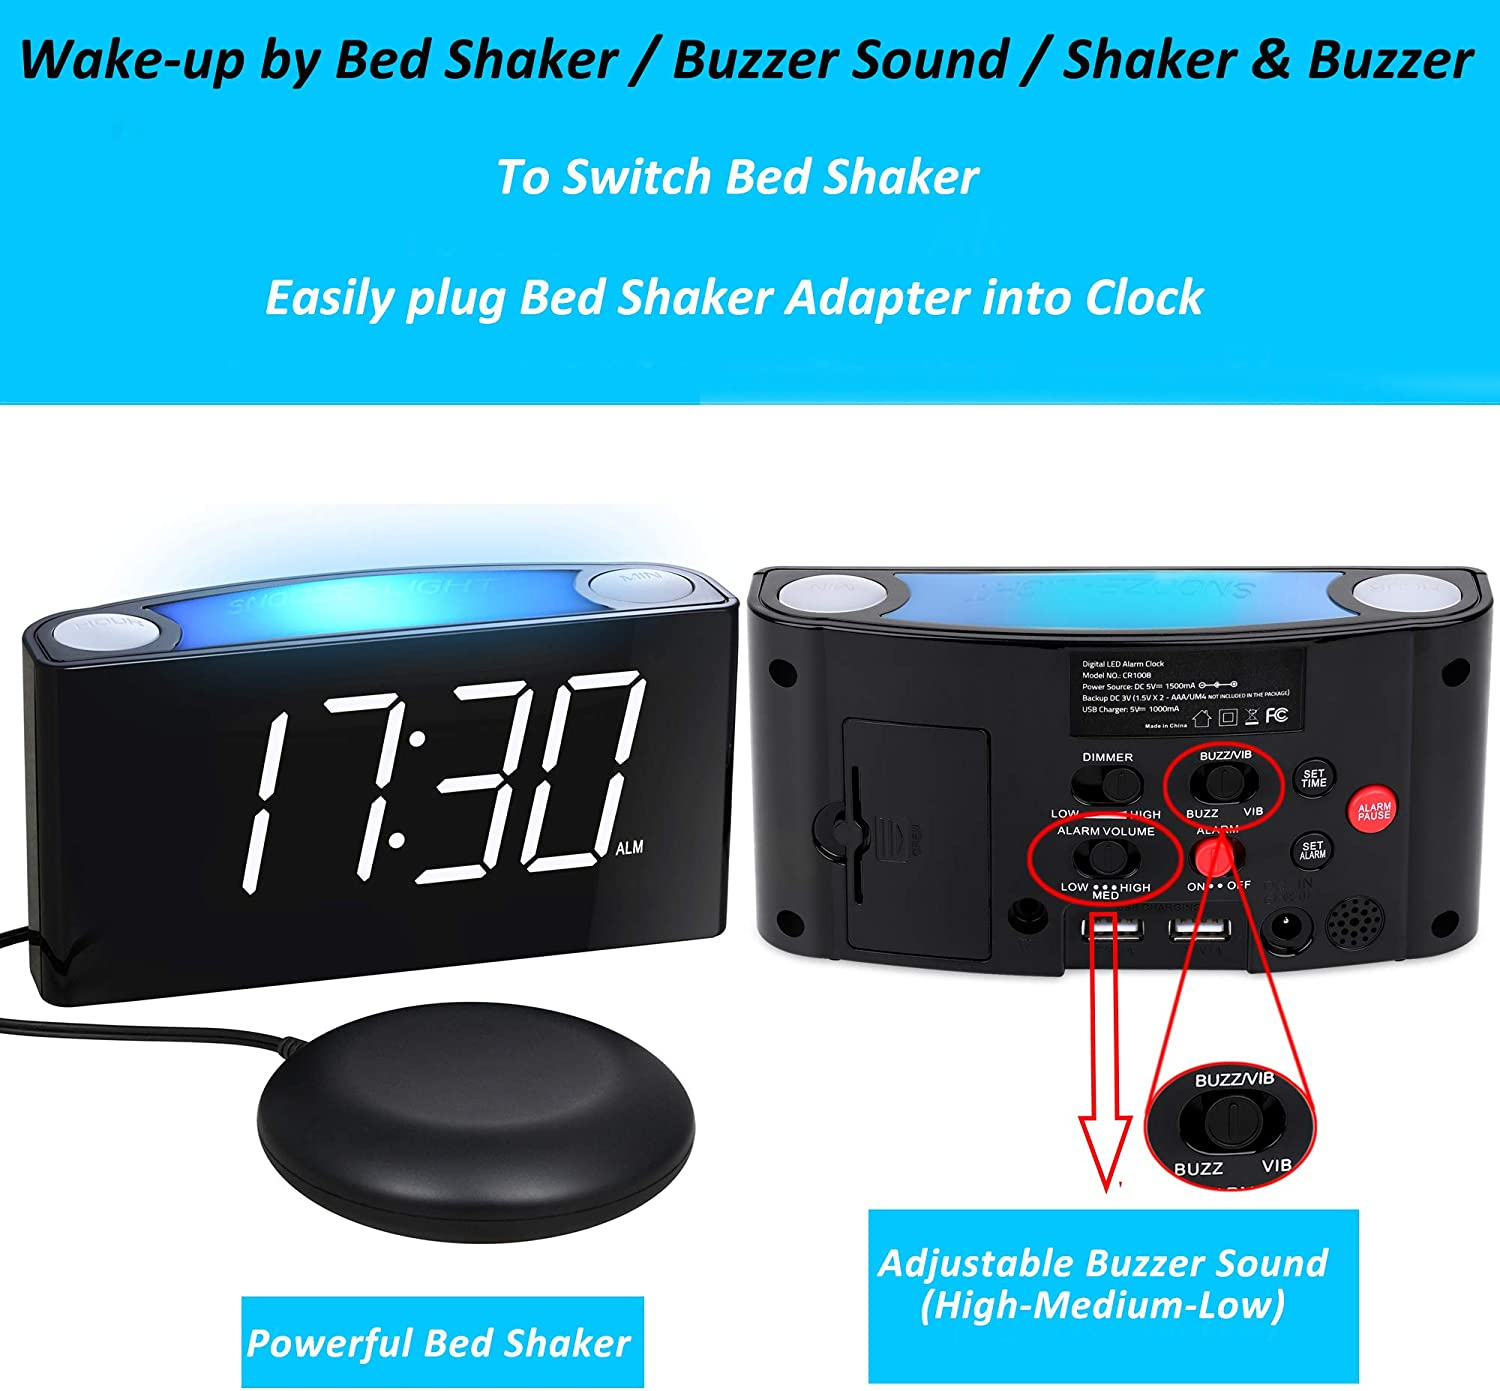 BUFFBEE Super Loud Alarm Clock for Heavy Sleepers with Bed Shaker USB Charger White Flashing Alert Light Full Range Dimmer Battery Backup Vibrating Alarm Clock for Bedrooms